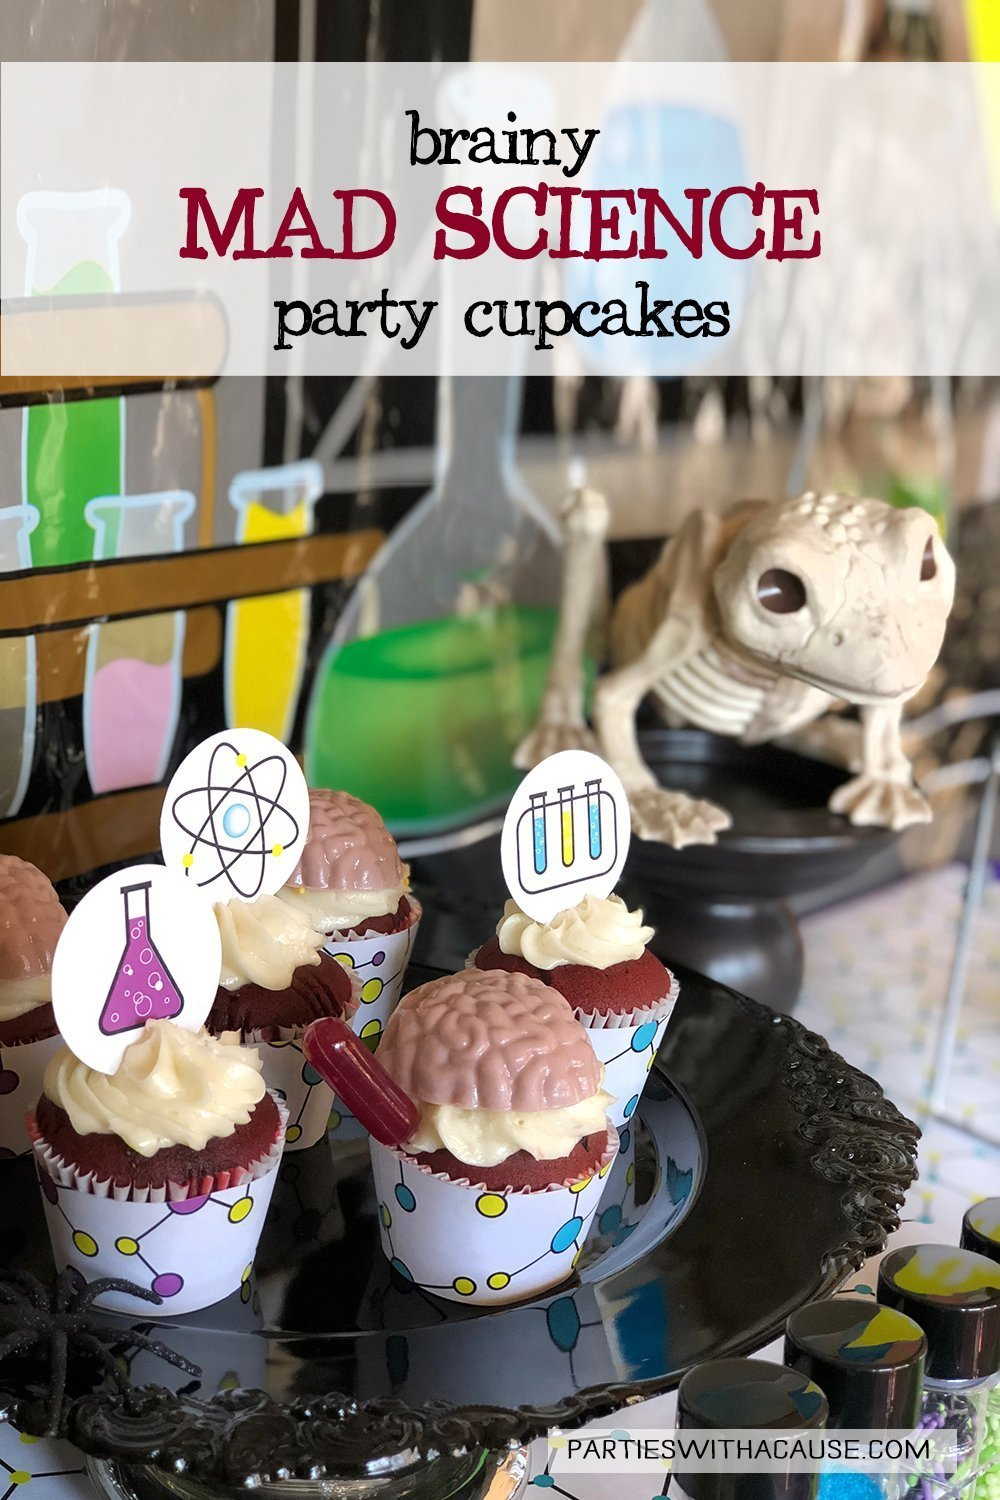 creepy Halloween cupcakes for a mad science party